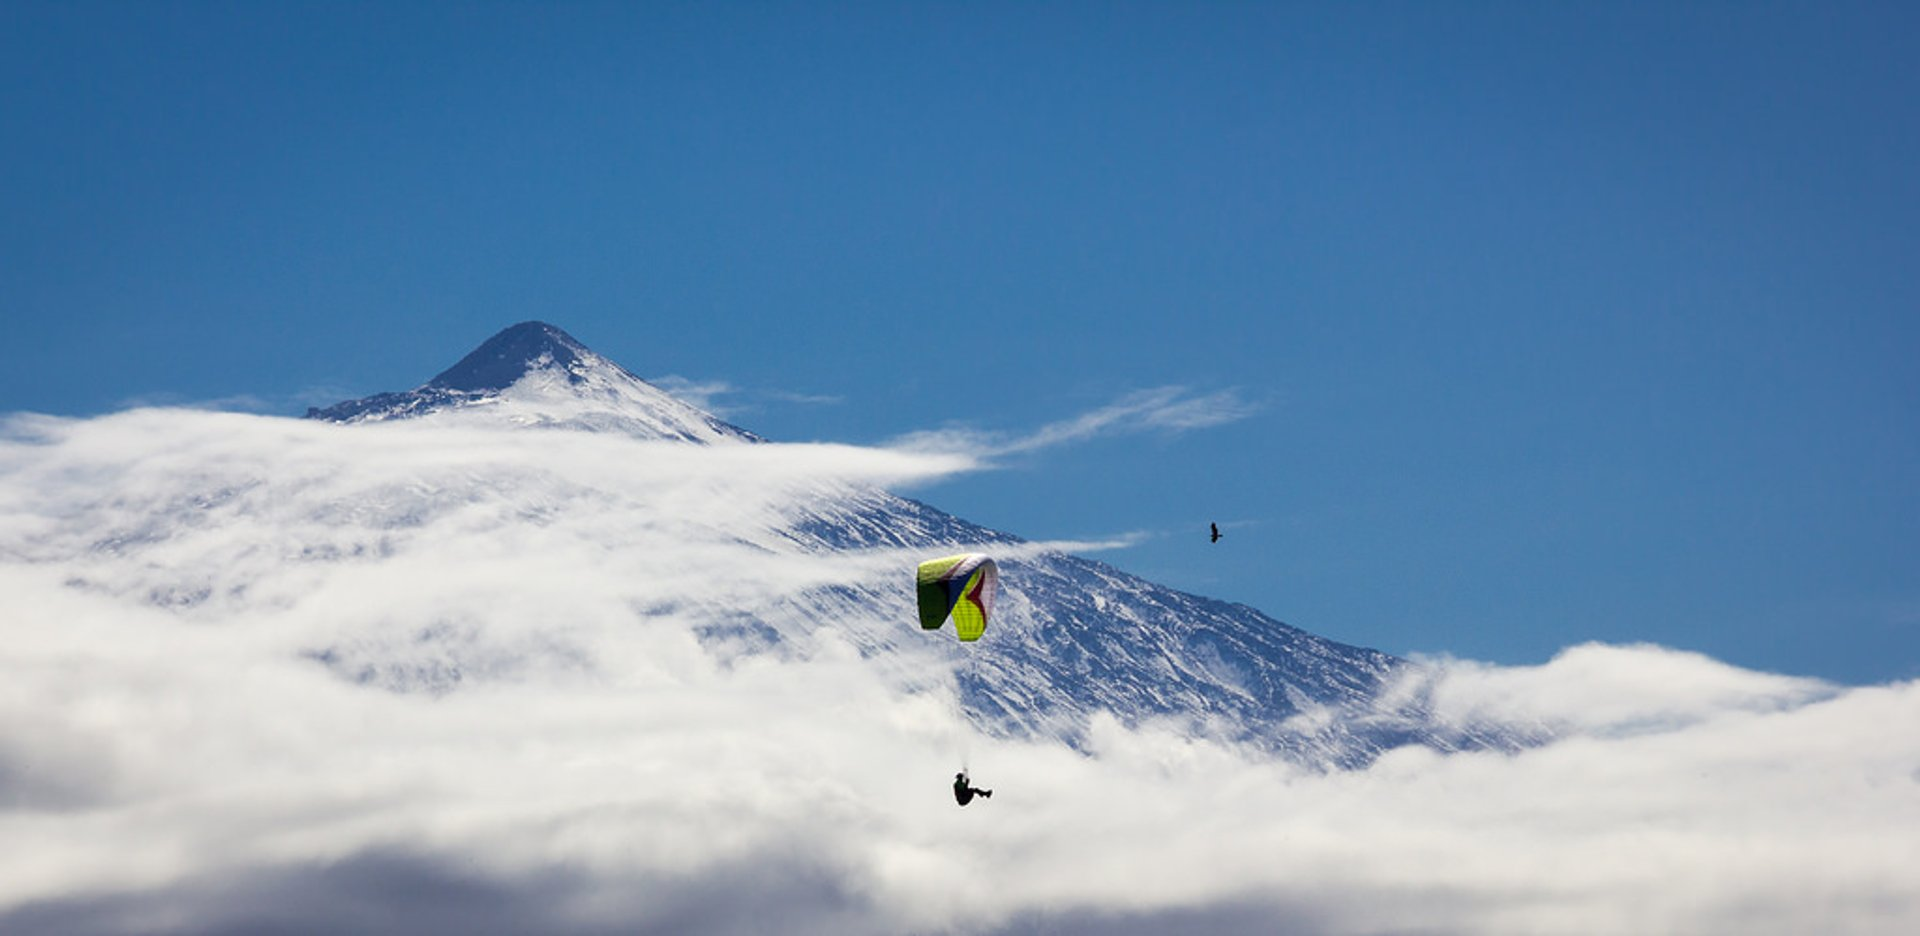 The background mountain is Mount Teide dormant volcano (3718 m) in the island of Tenerife 2020